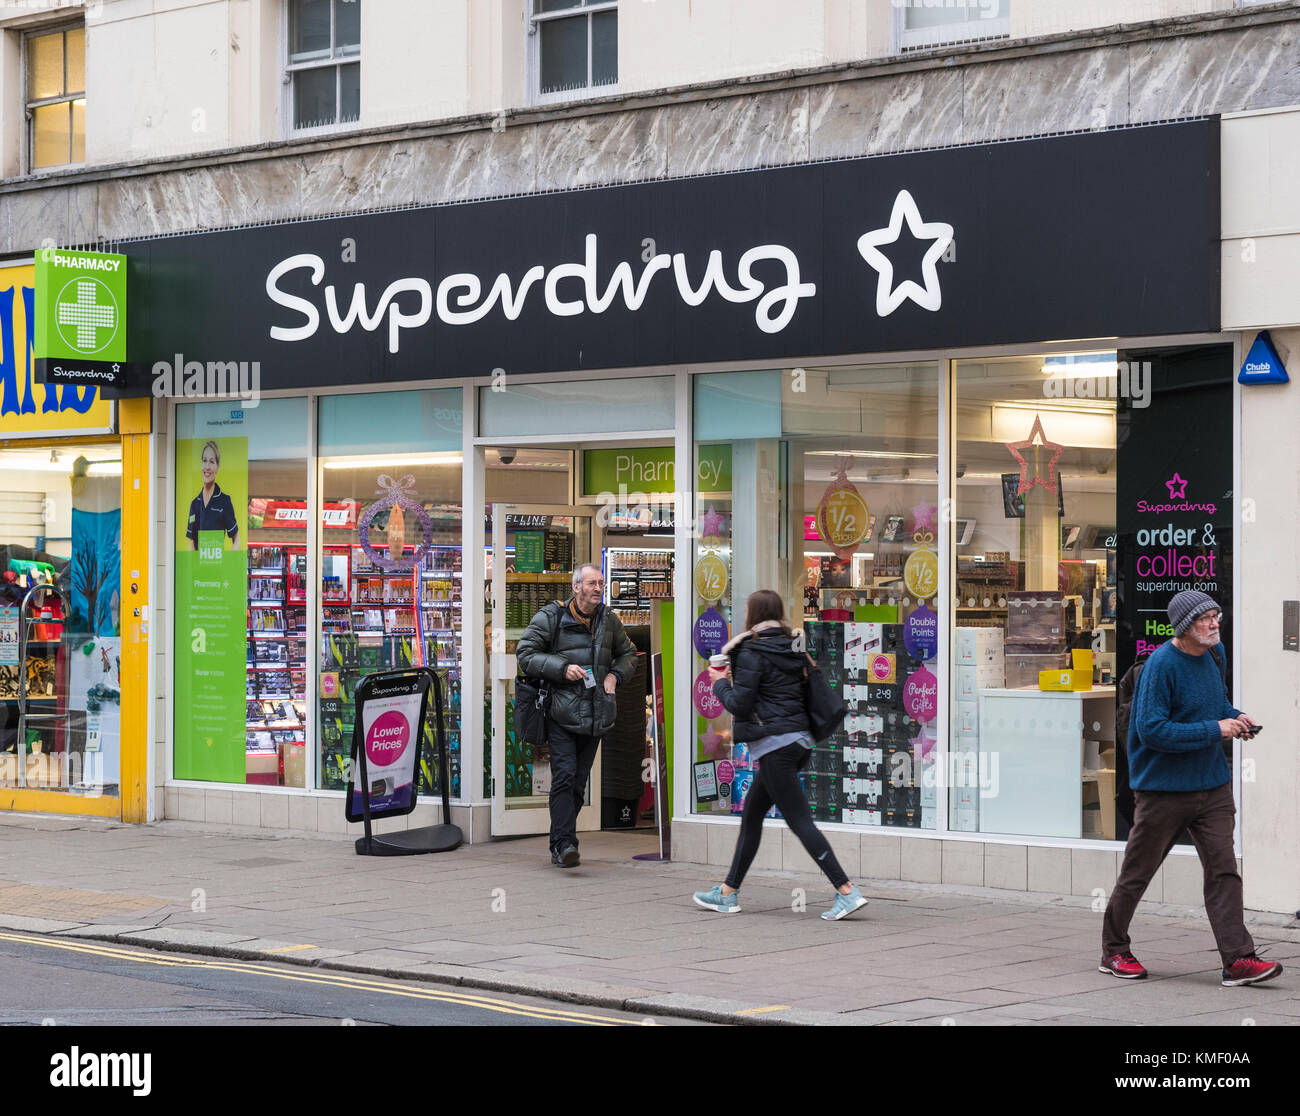 Superdrug shop front entrance in the UK. - Stock Image